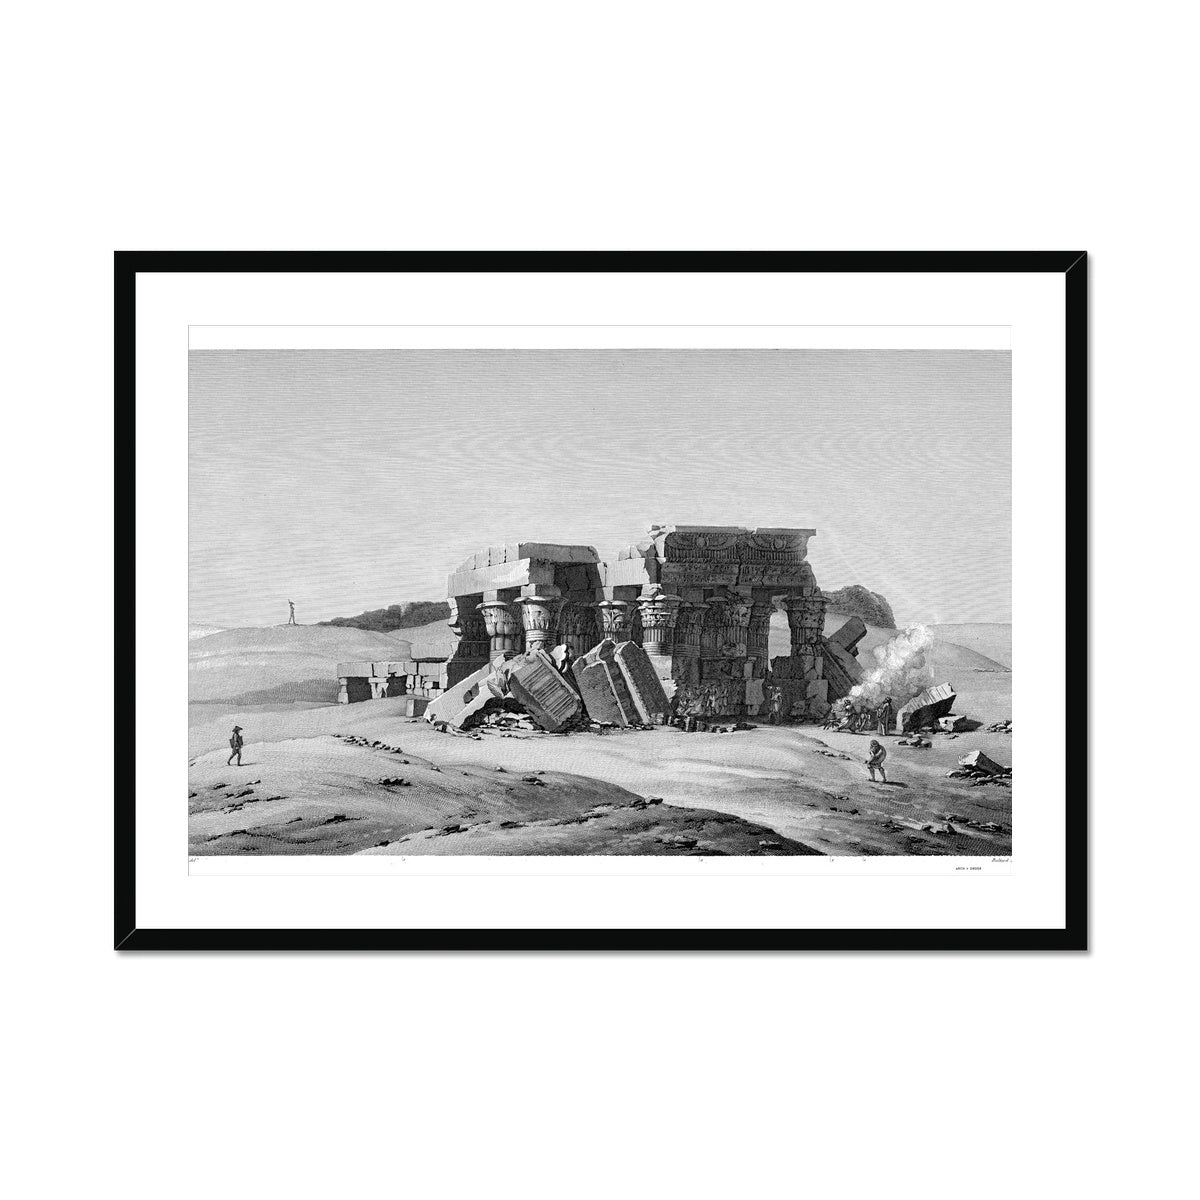 Temple Ruins - Kom Ombo Egypt -  Framed & Mounted Print